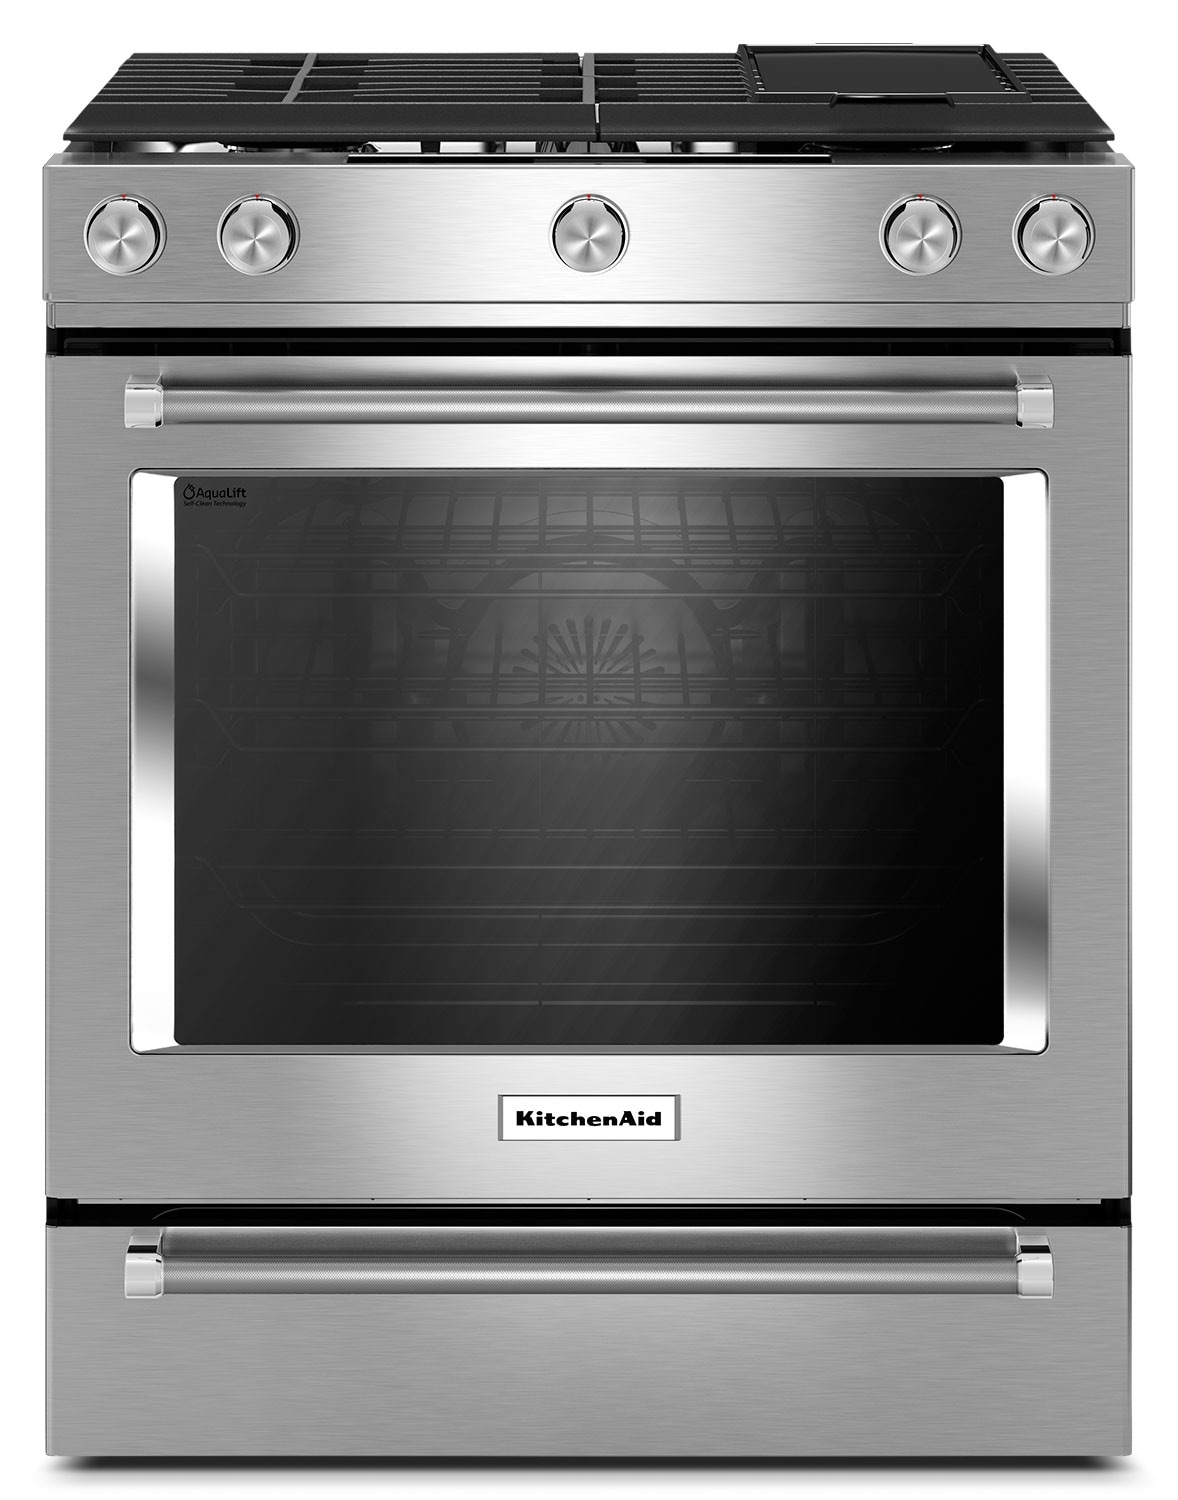 Cooking Products - KitchenAid 7.1 Cu. Ft. Slide-In Dual Fuel Range with Baking Drawer - Stainless Steel